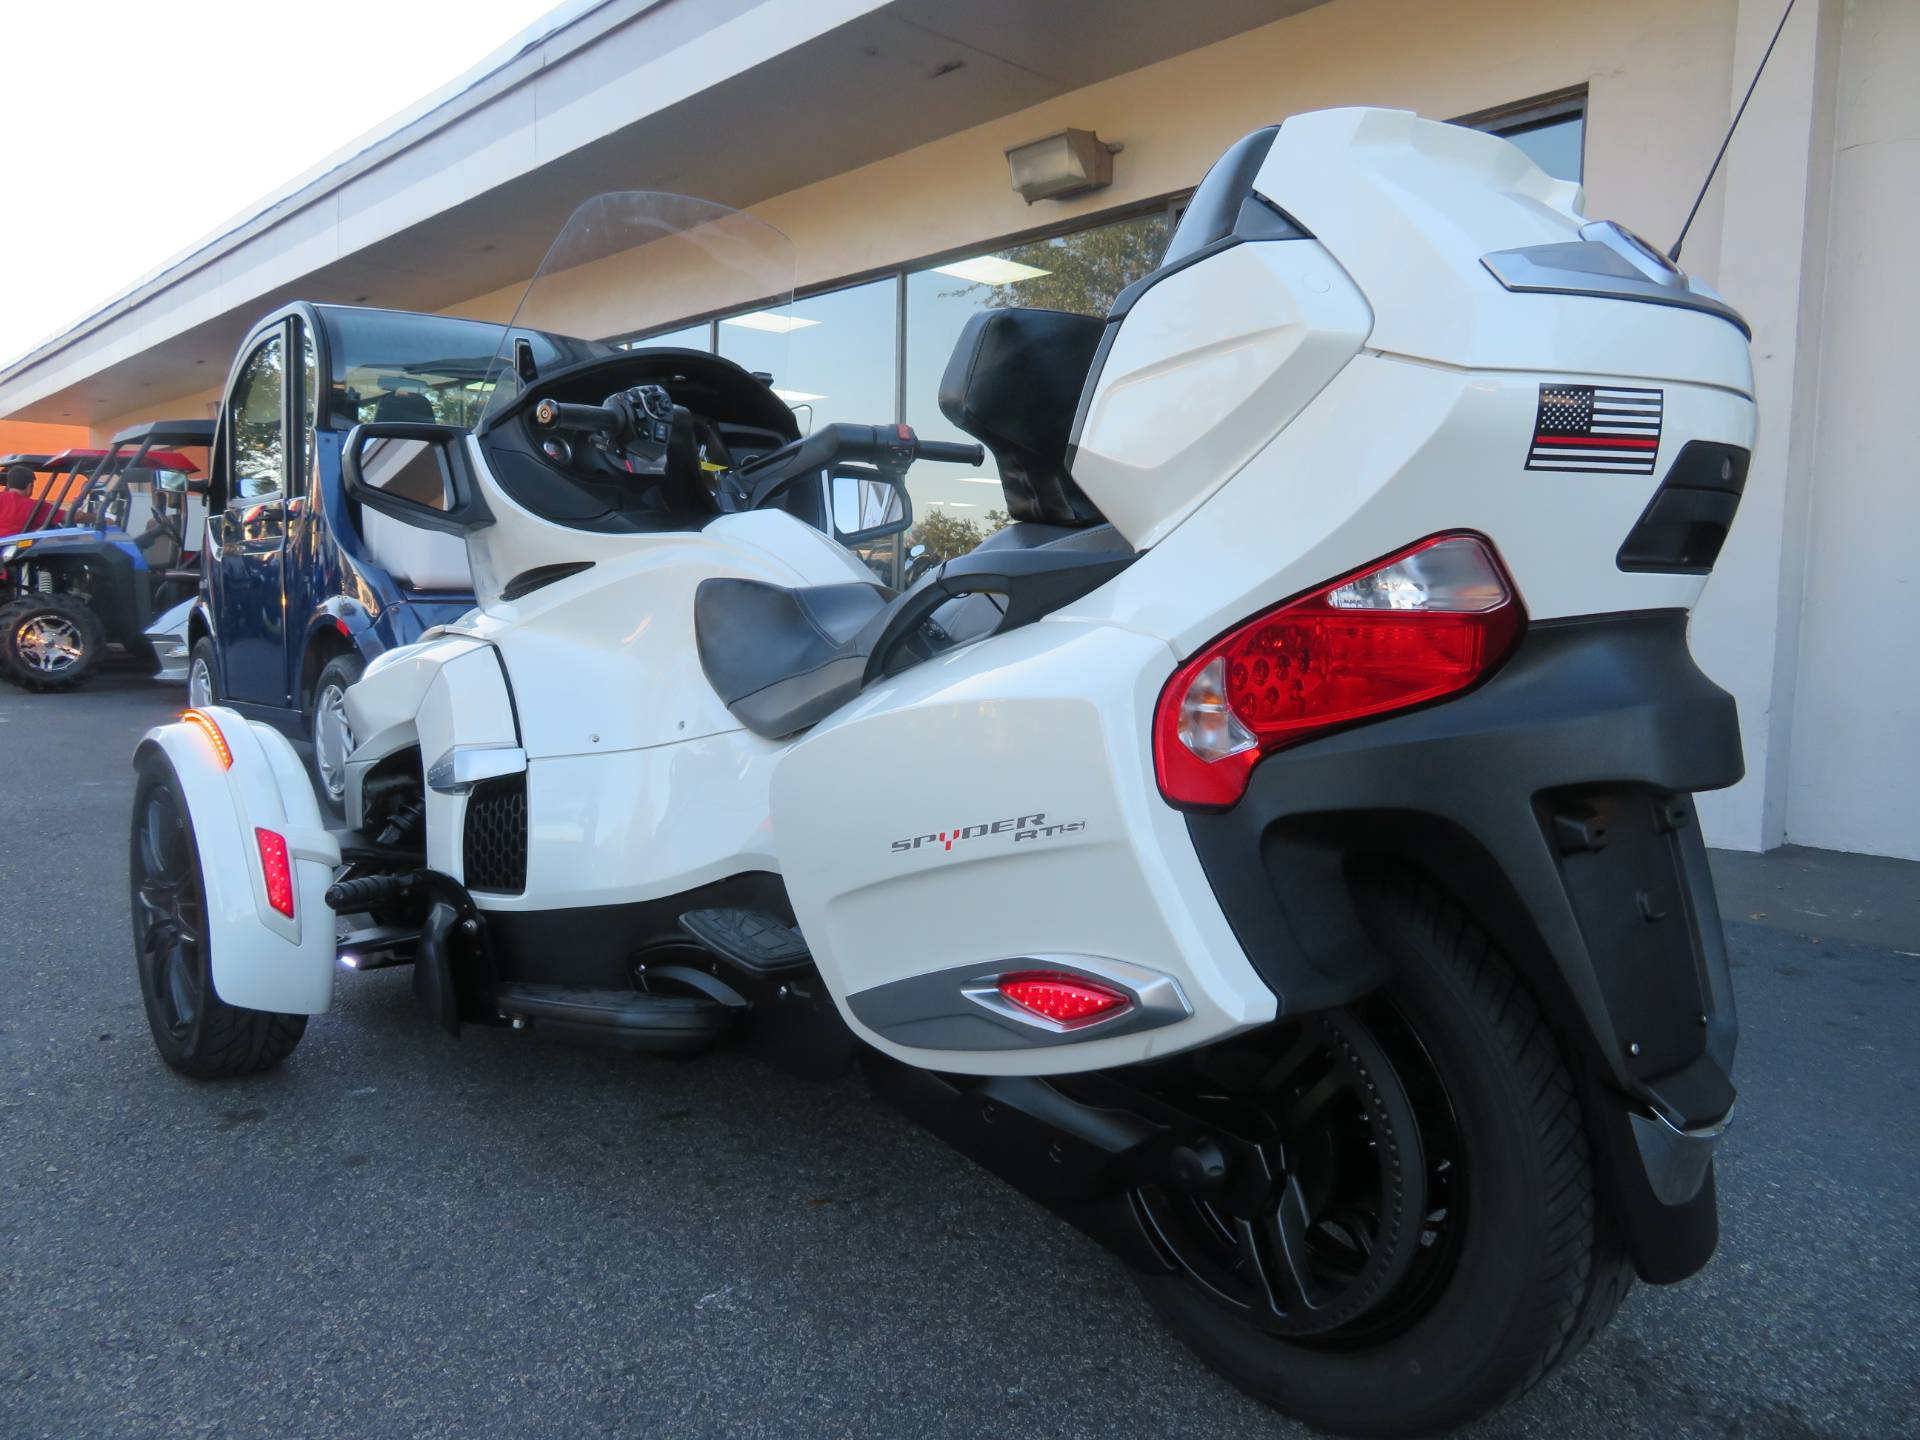 2016 Can-Am Spyder RT-S SE6 in Sanford, Florida - Photo 8